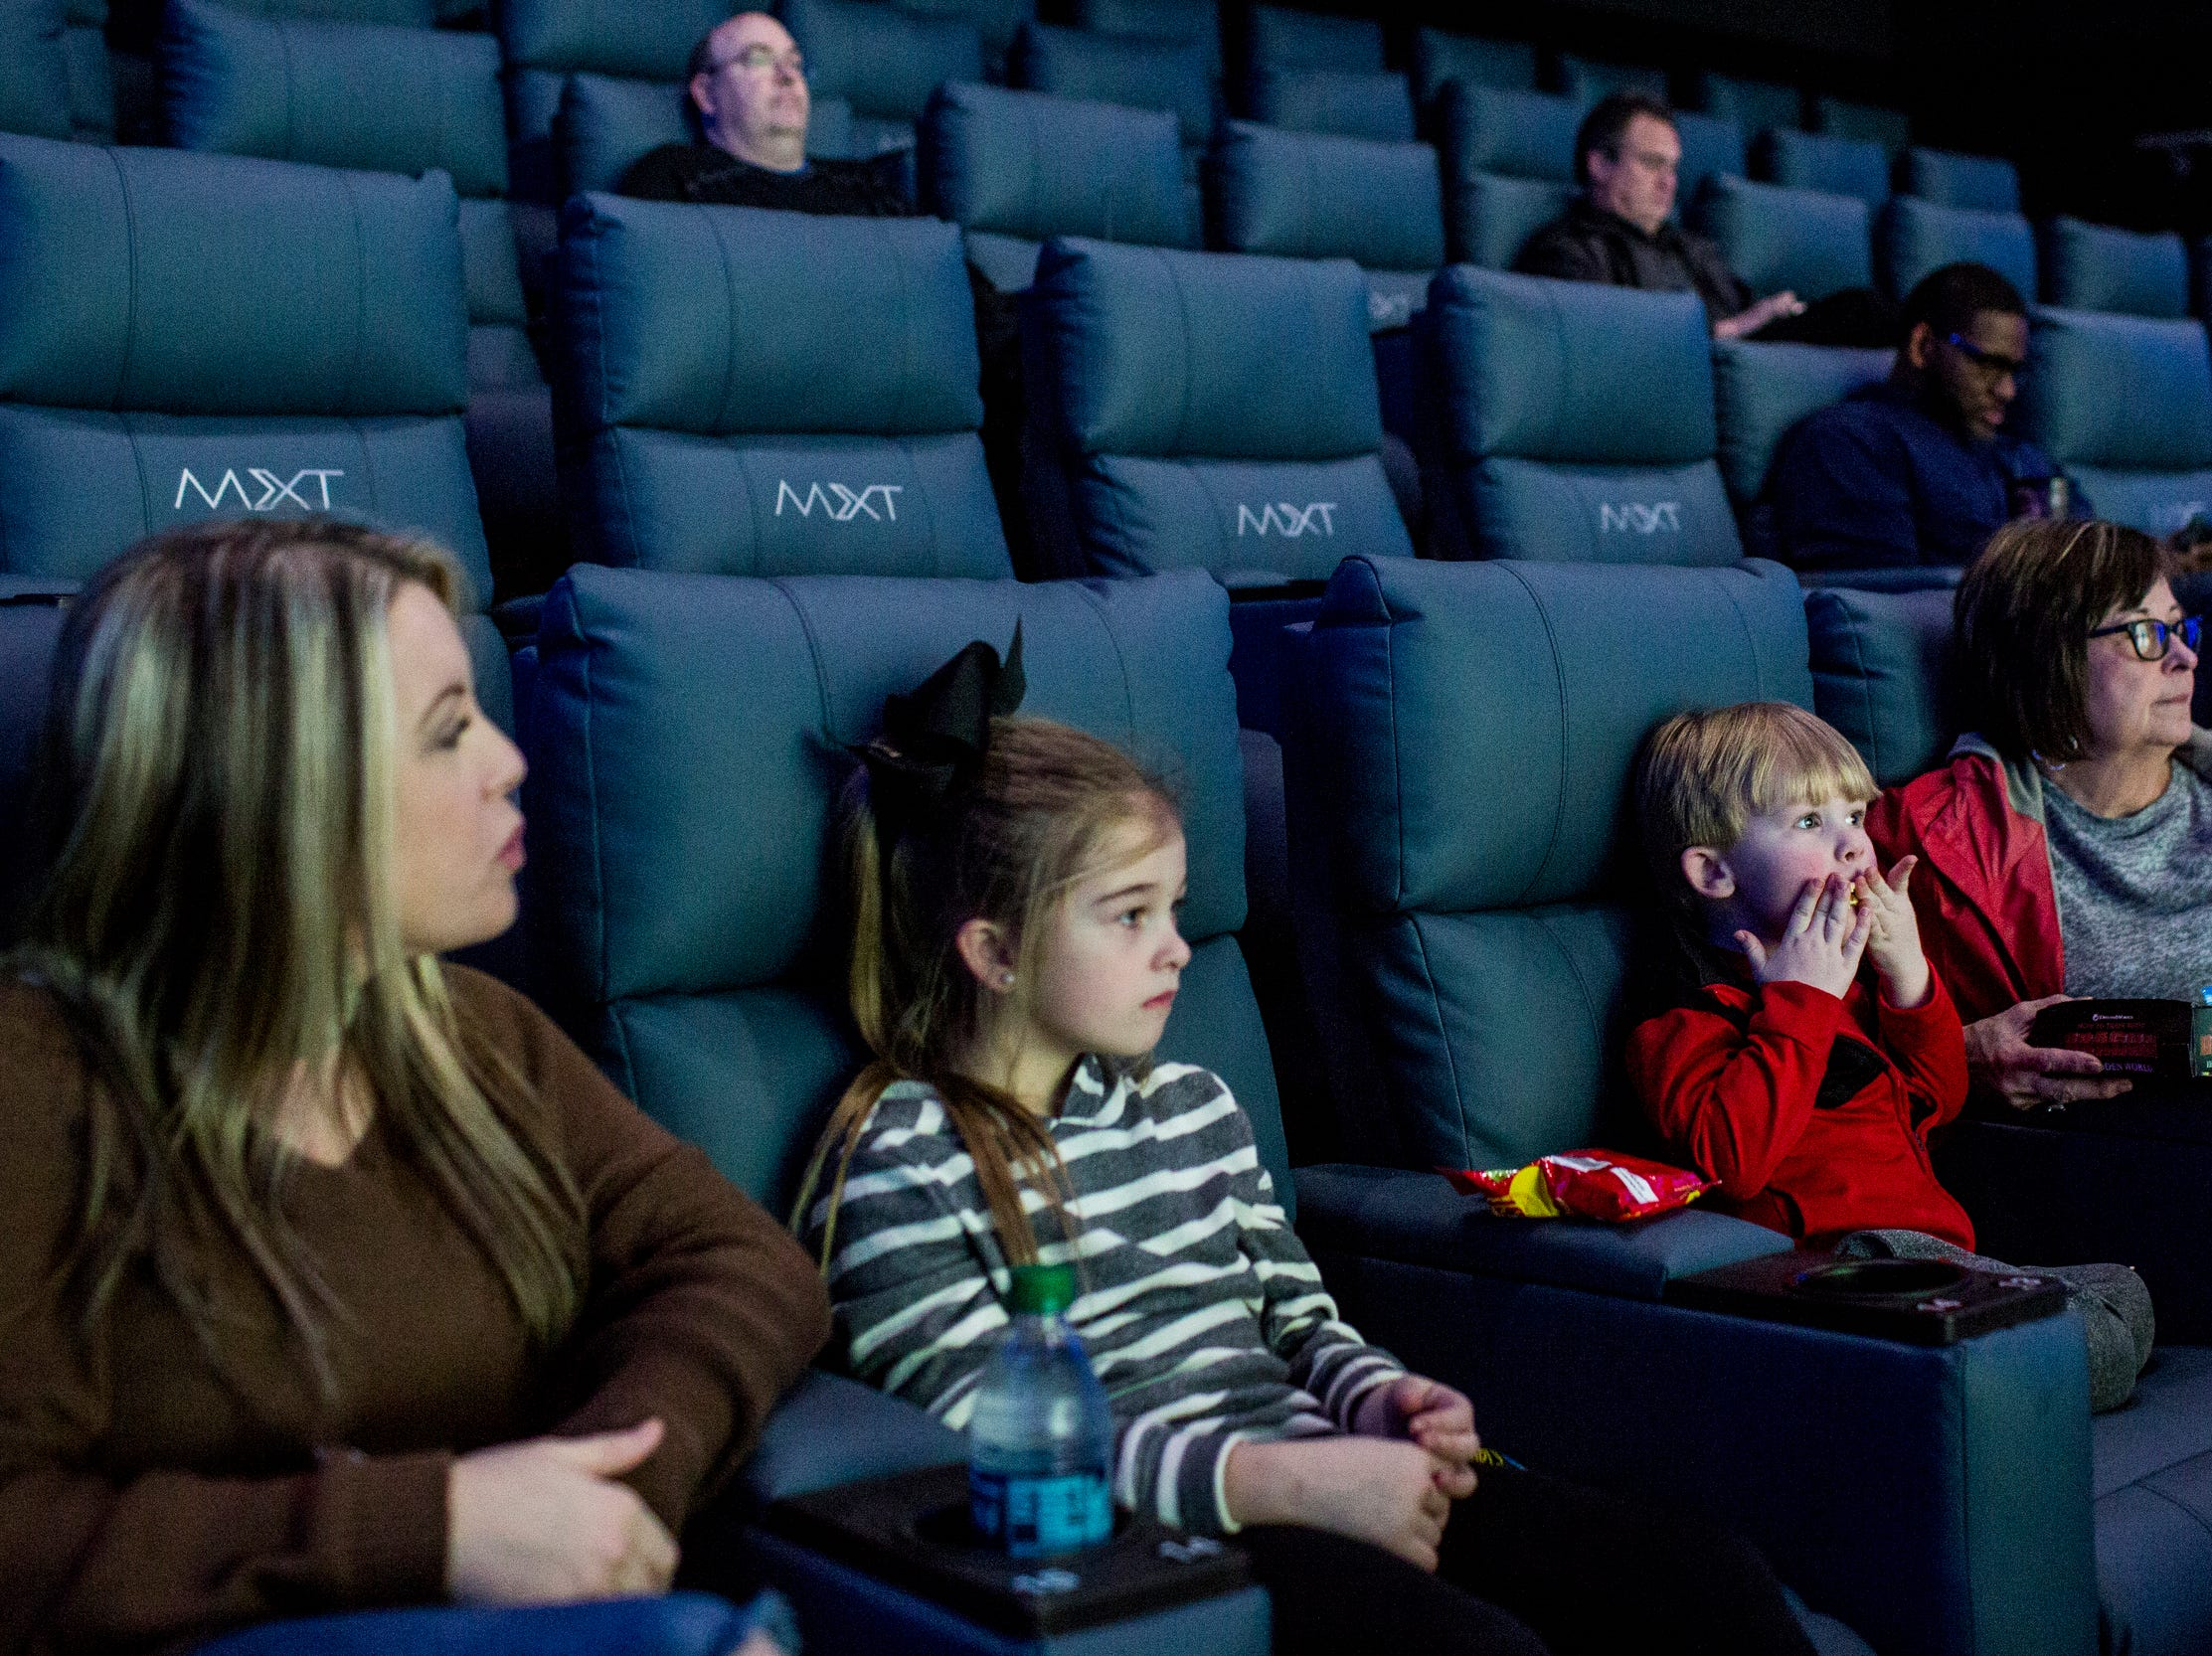 March 08, 2019 - From left, Haley Moak and her children, Randi Rae, 7, Parker, 3, and mother, Shelly Harrell, wait for the start of their movie at Malco Powerhouse Cinema Grill & Bar.